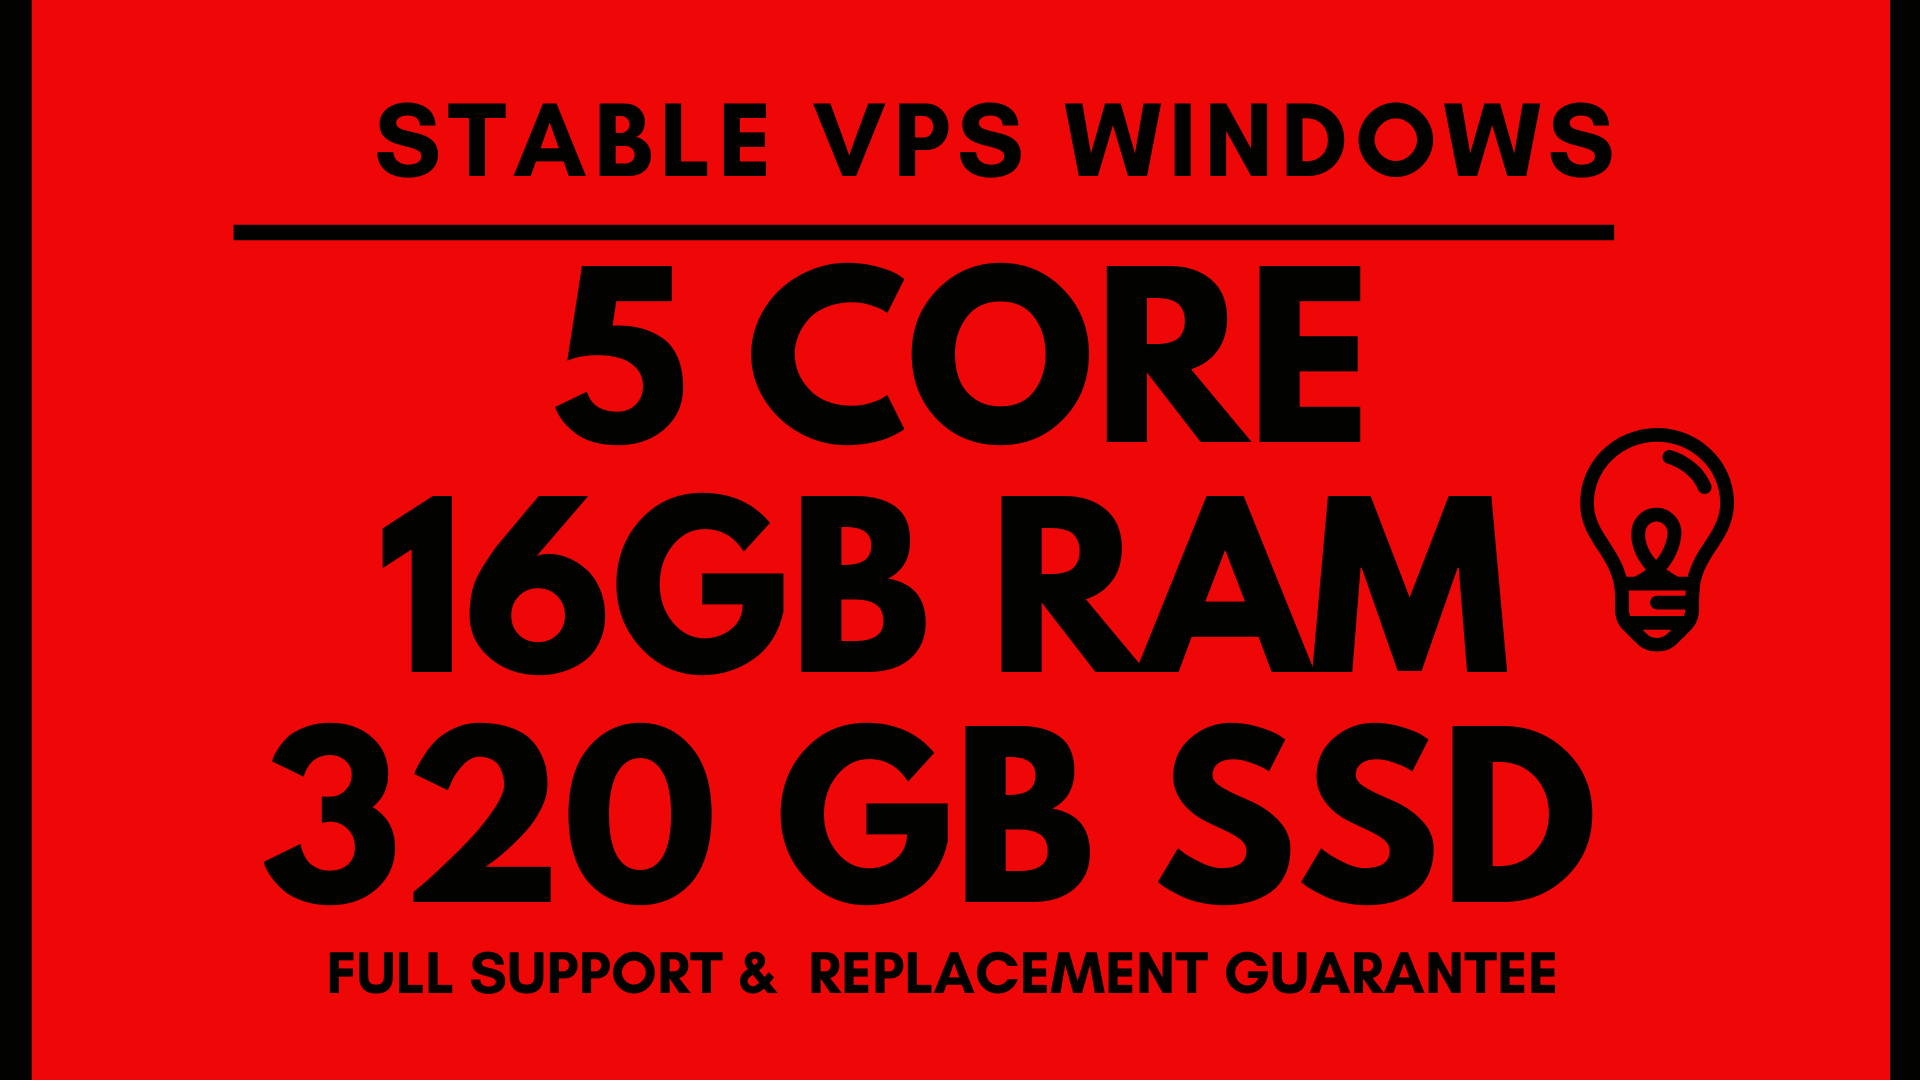 STABLE Windows VPS RDP 16GB RAM 5CORE 320GB SSD